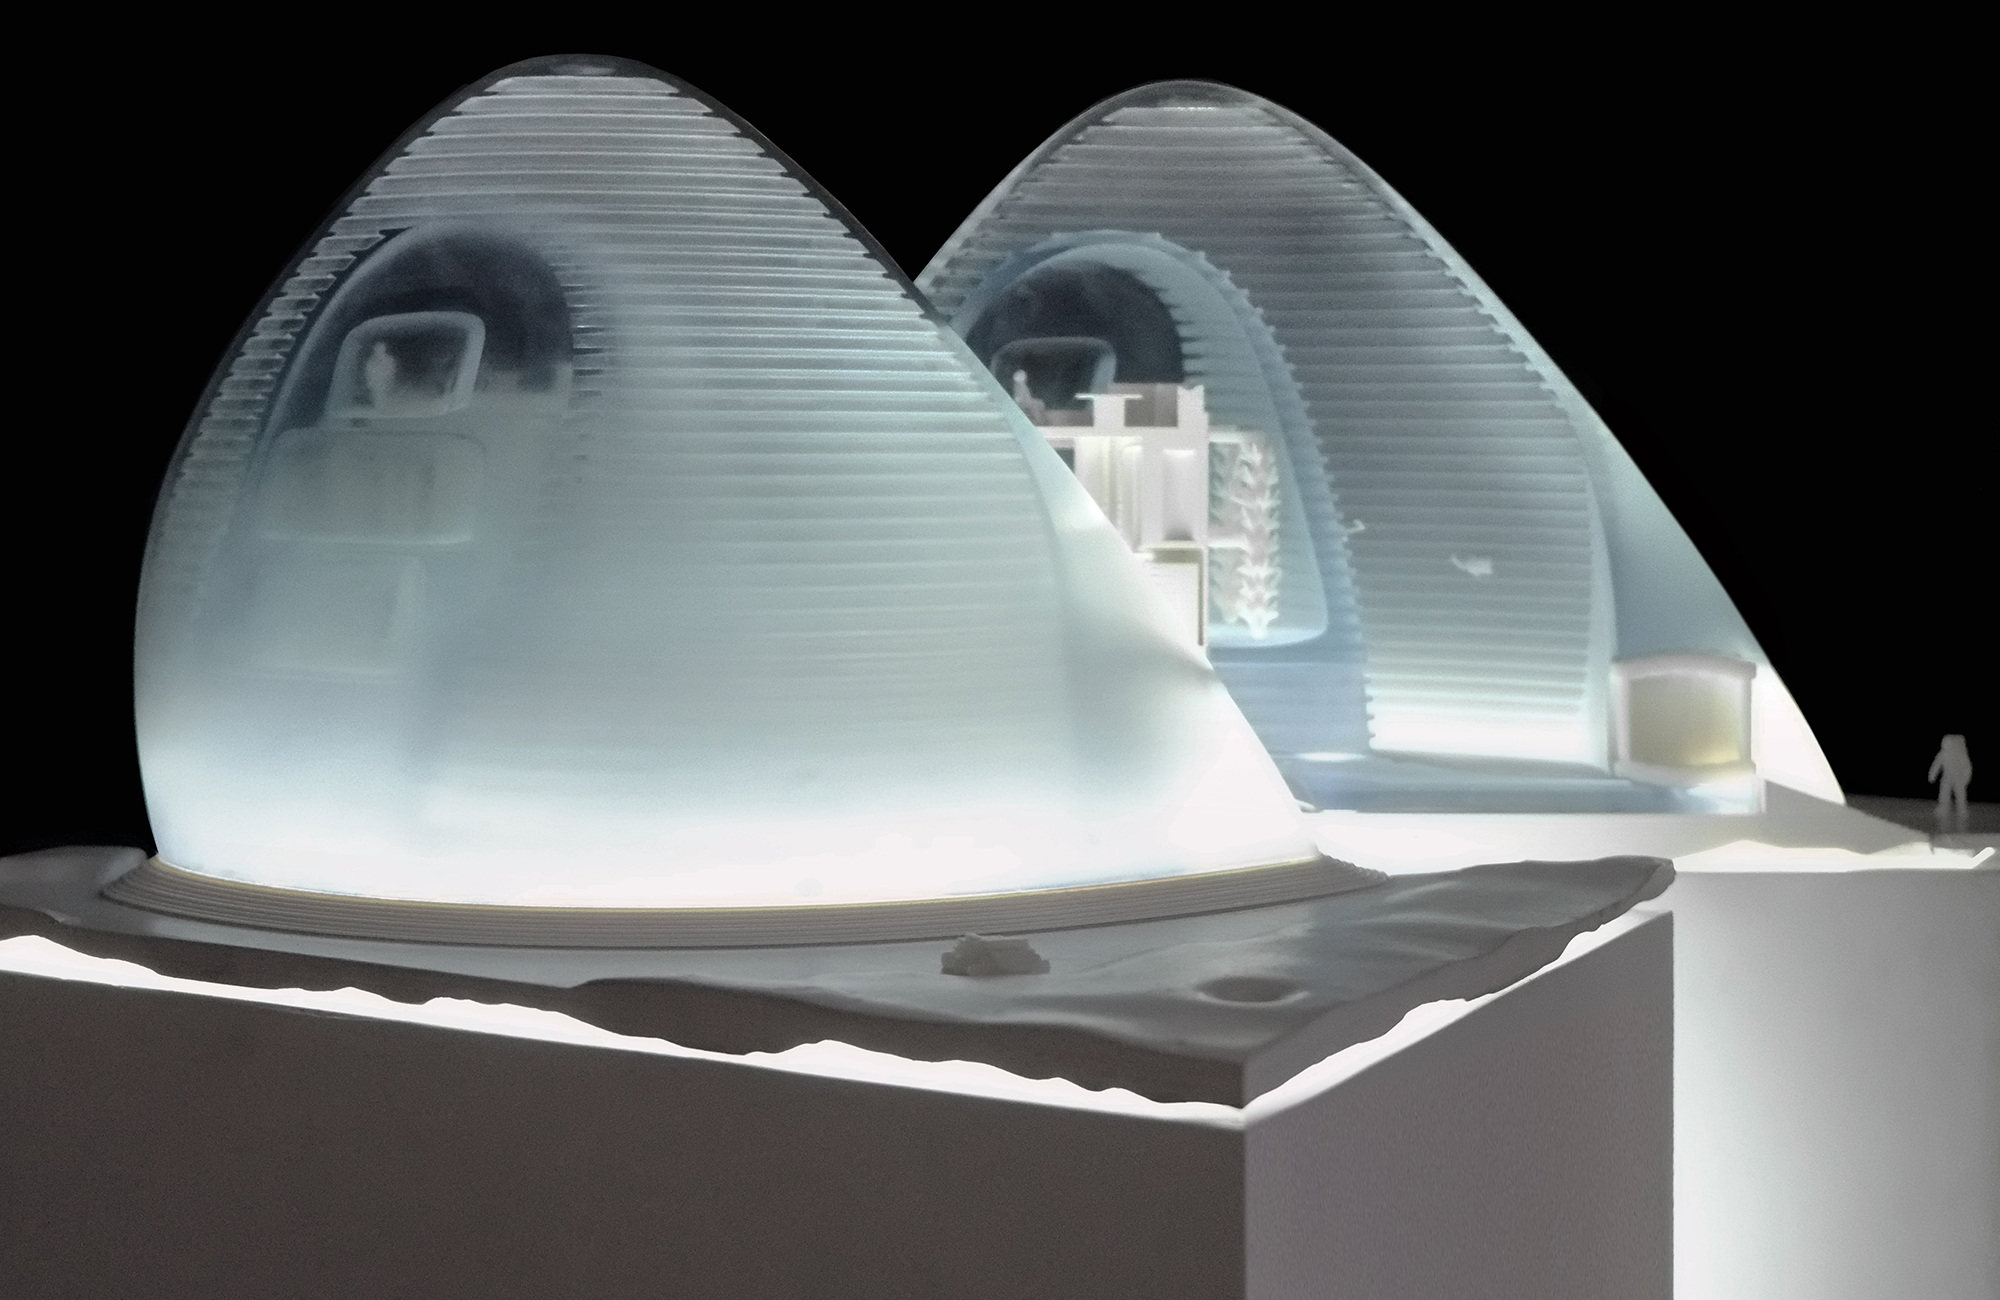 3D-Printed Model of Mars Ice House